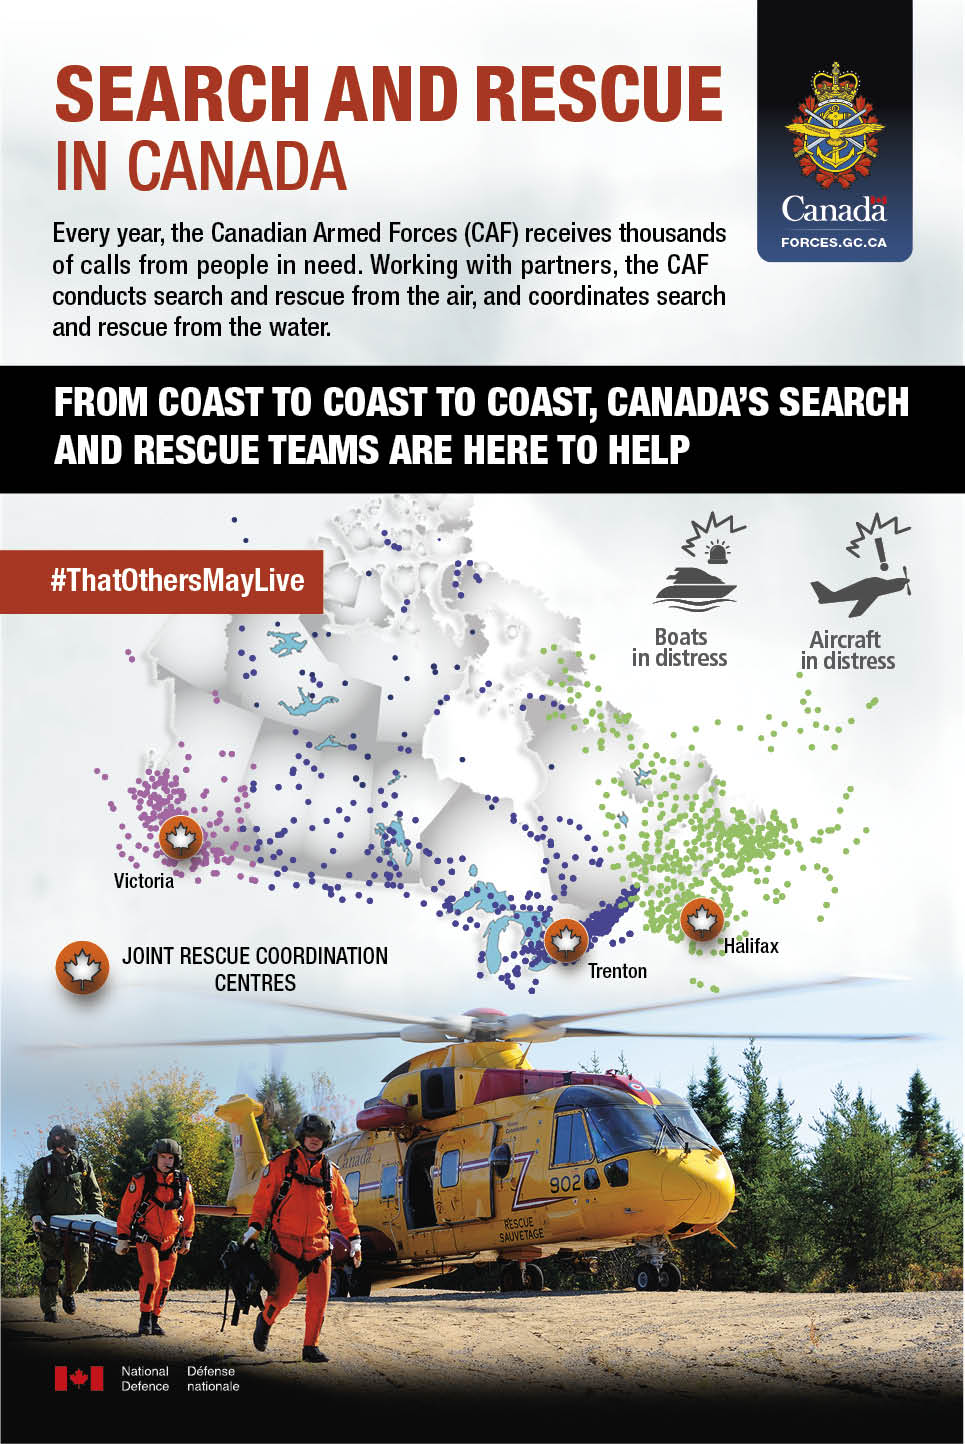 Infographic explaining search and rescue in Canada. Follow link for details.